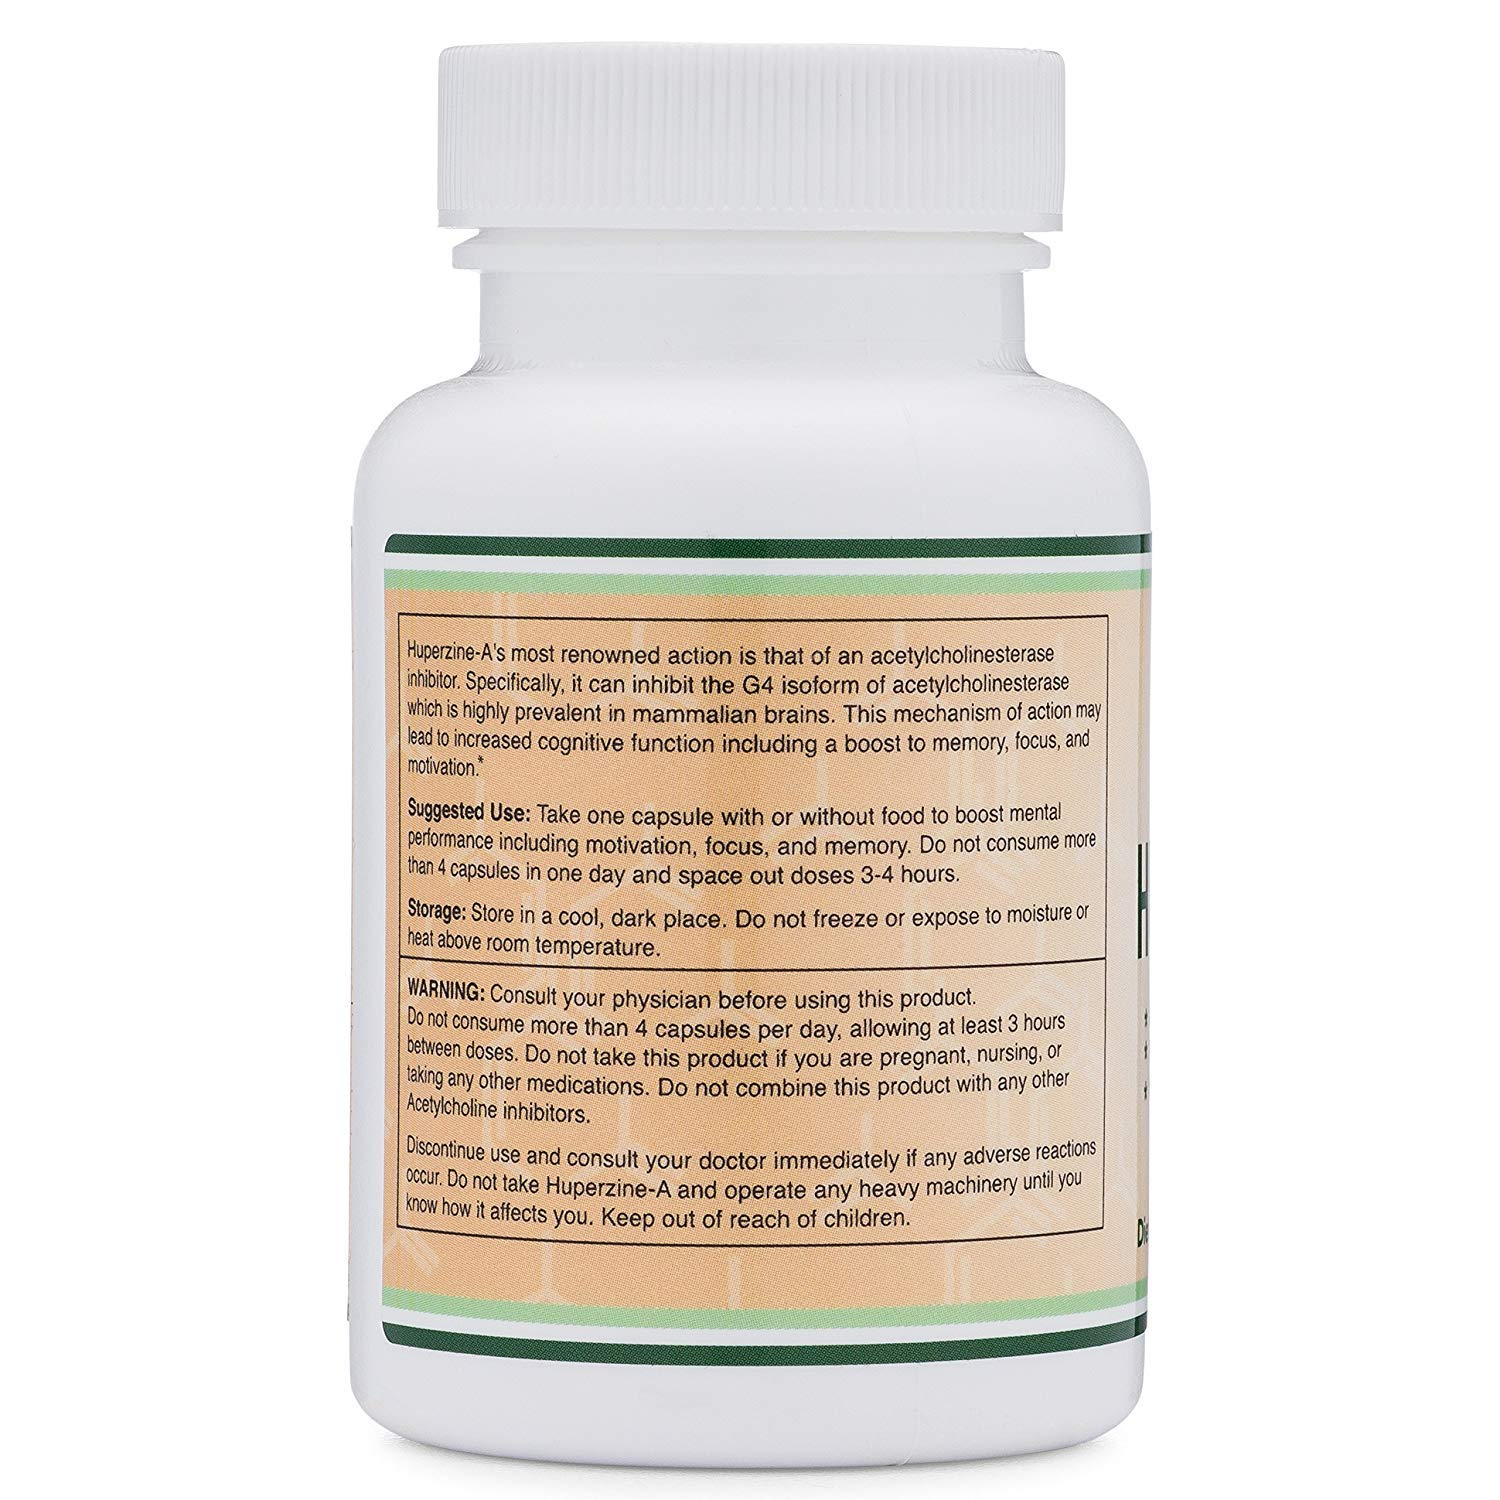 Huperzine A 200mcg (Third Party Tested) Made in The USA, 120 Tablets, Nootropics Brain Supplement to Boost Acetylcholine, Improve Memory and Focus by Double Wood Supplements by Double Wood Supplements (Image #3)